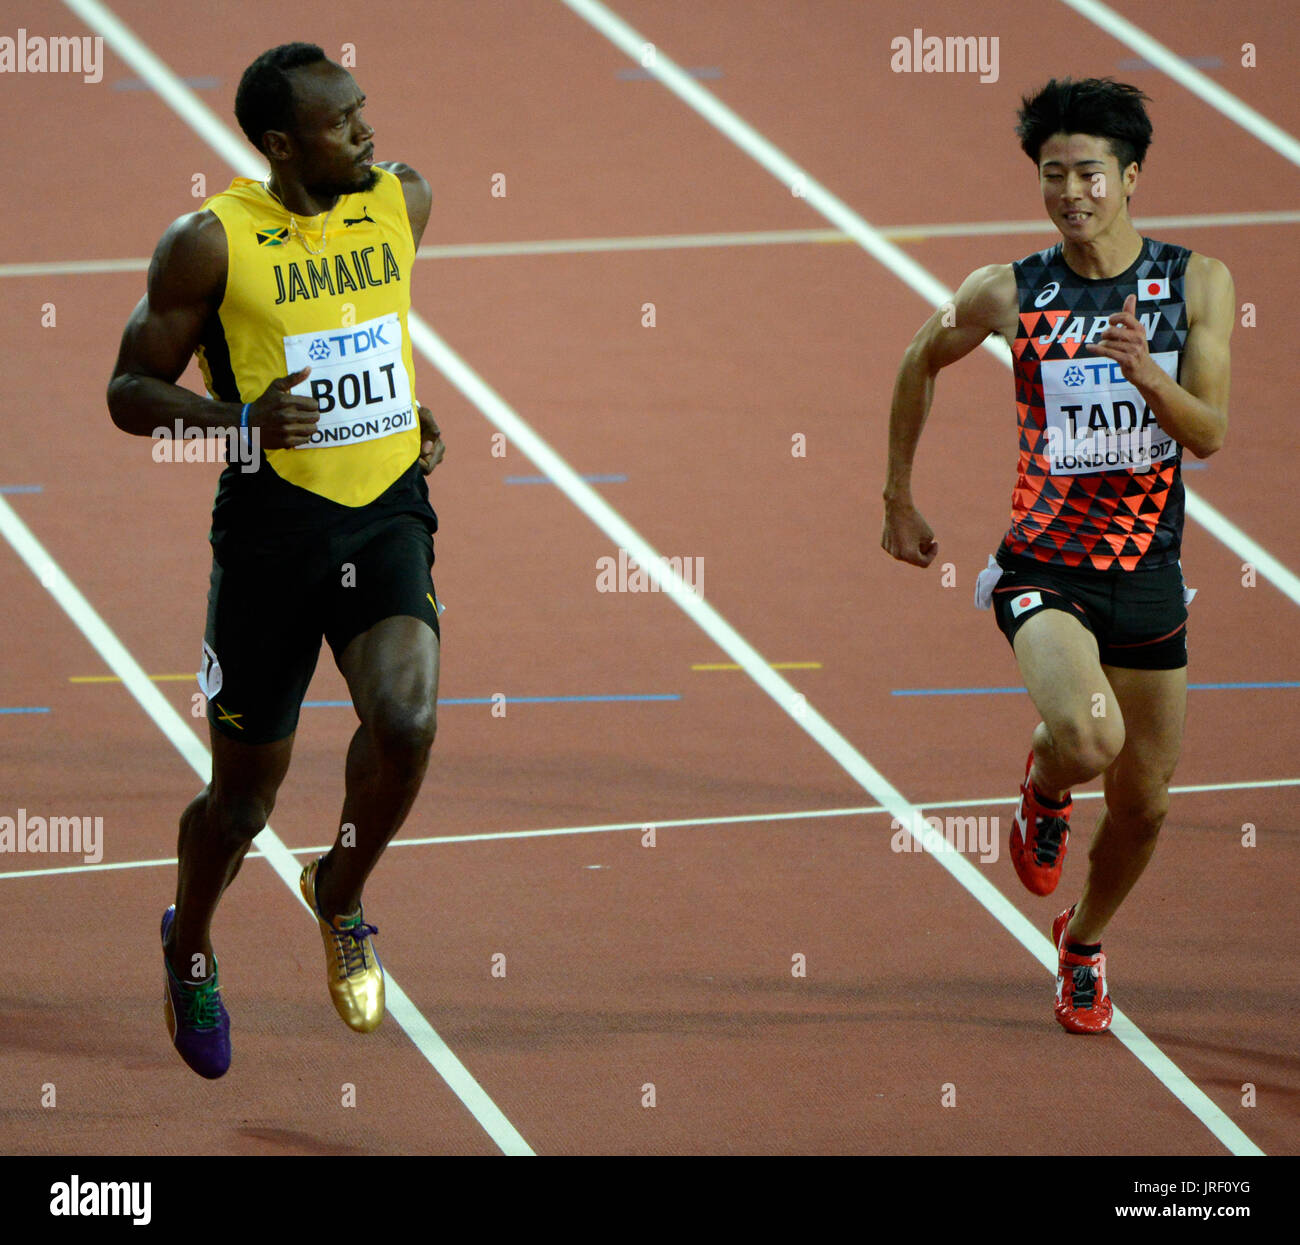 Usain Bolt - IAAF World Championships London 2017 - Stock Image